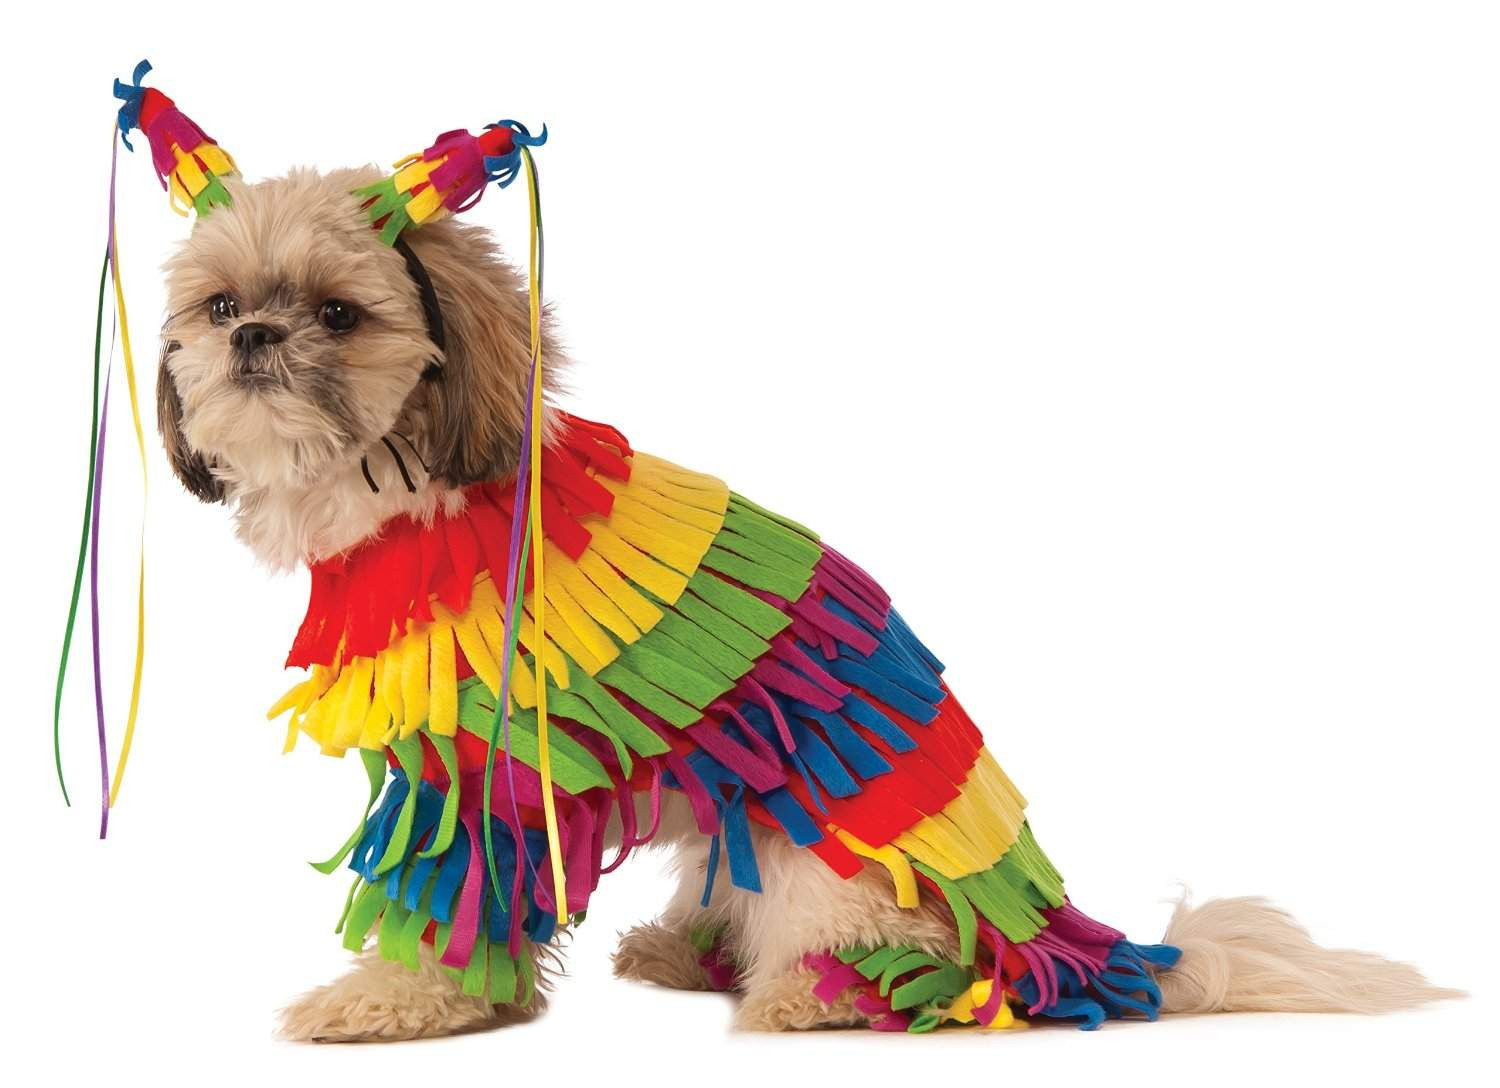 Best ideas about DIY Costumes For Dogs . Save or Pin Top 20 Best Cute Dog Costumes for Halloween Now.